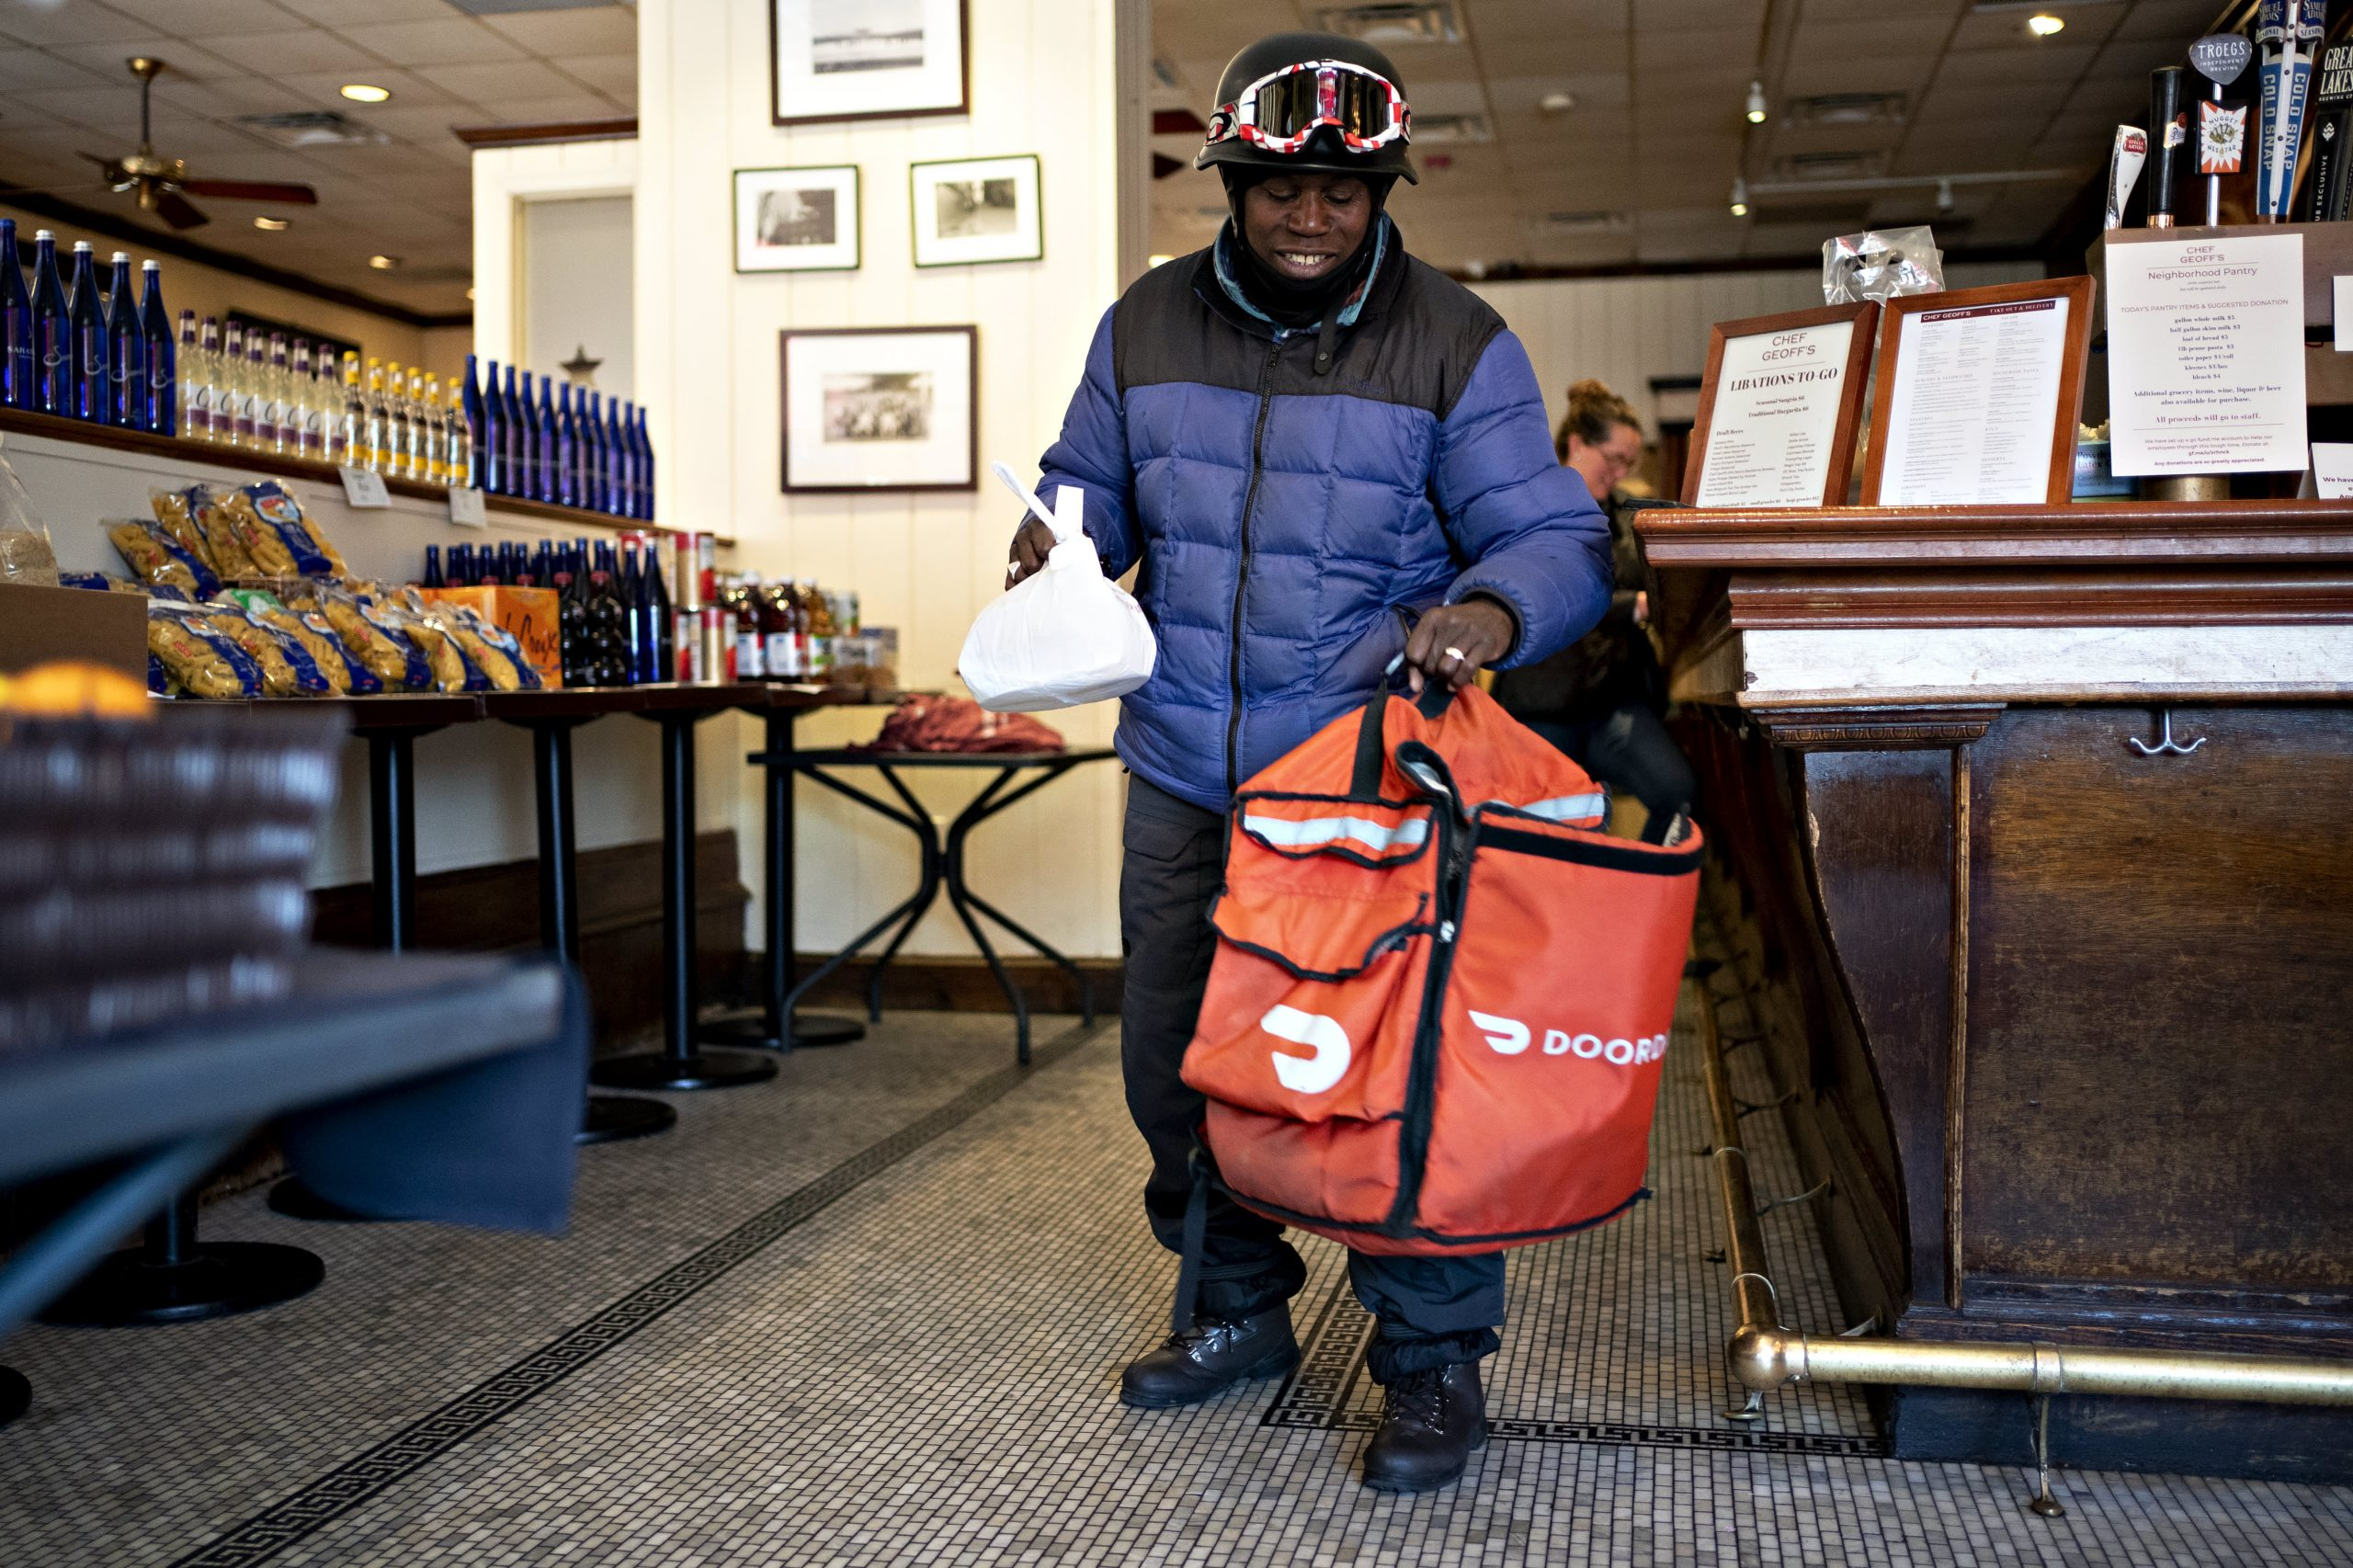 DoorDash settles with DC AG for $2.5 million over claims it misled users on driver tips